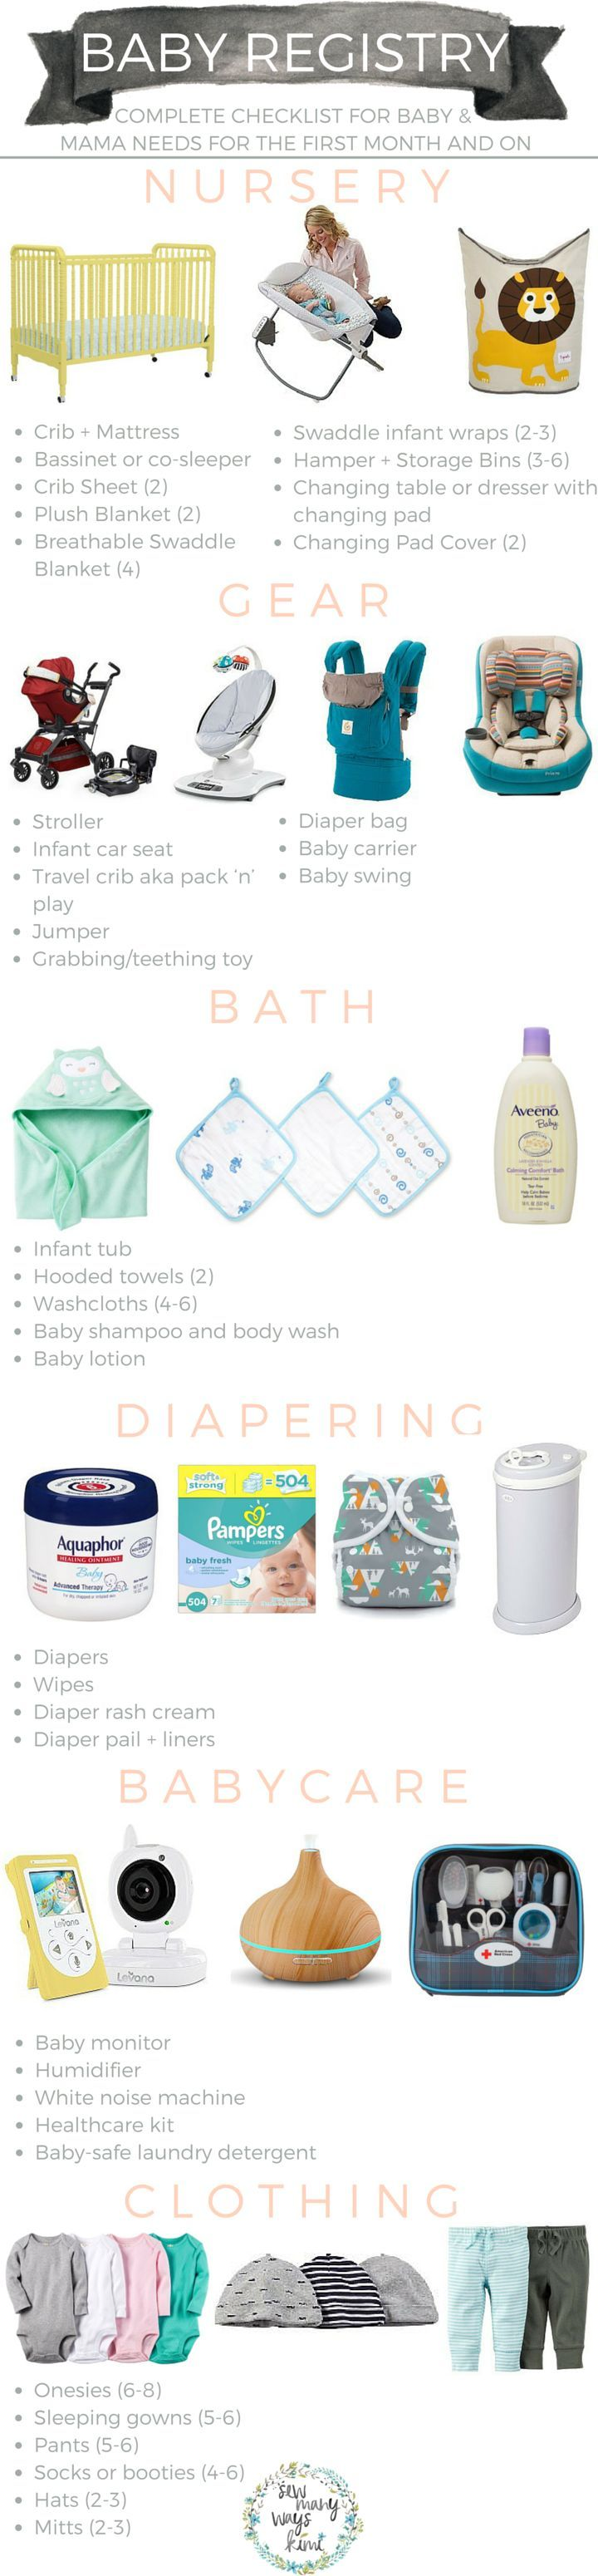 Best 25+ Baby checklist ideas on Pinterest | Baby needs list ...